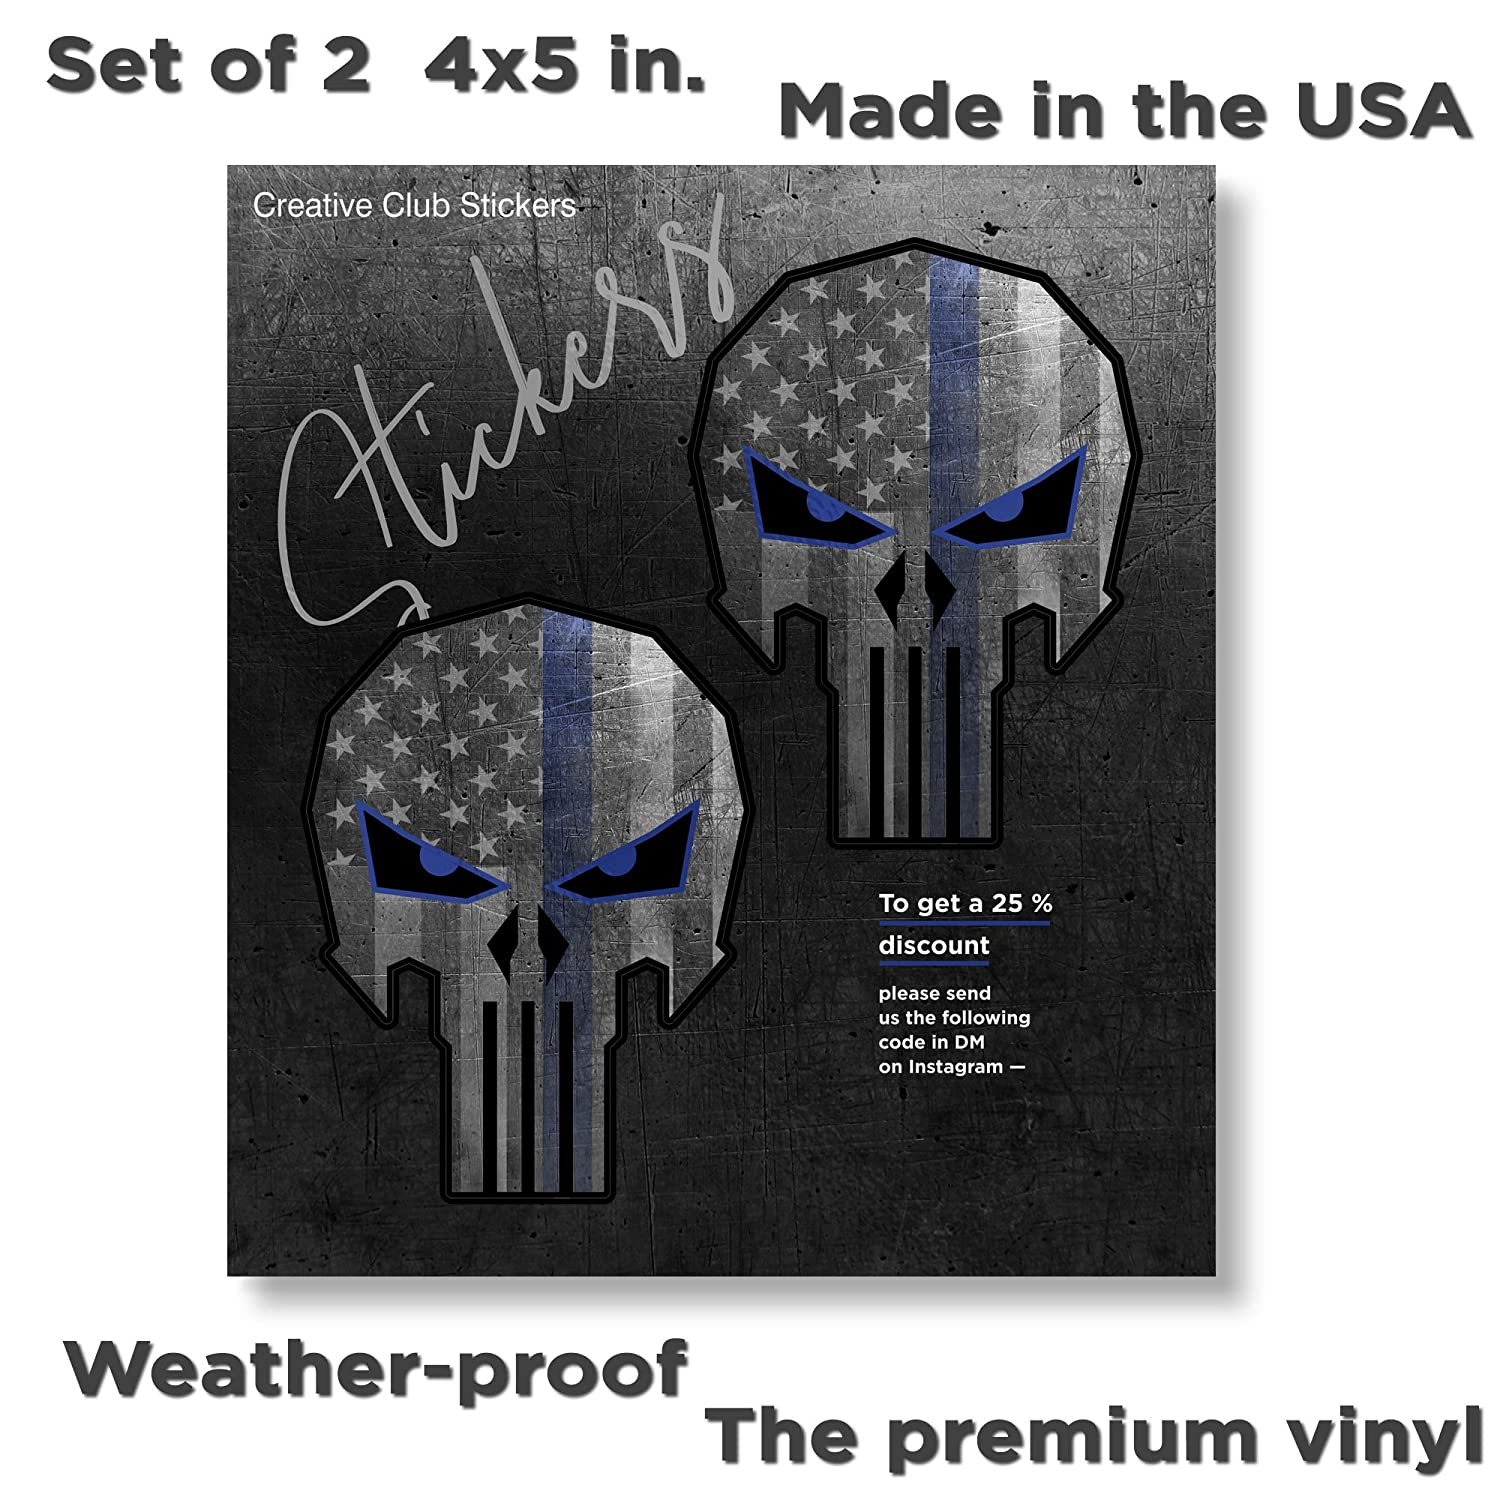 Skull Wall Decal Punisher Blue Line Vinyl Truck Bumper Sticker for Car 17 Large Creative Club Stickers